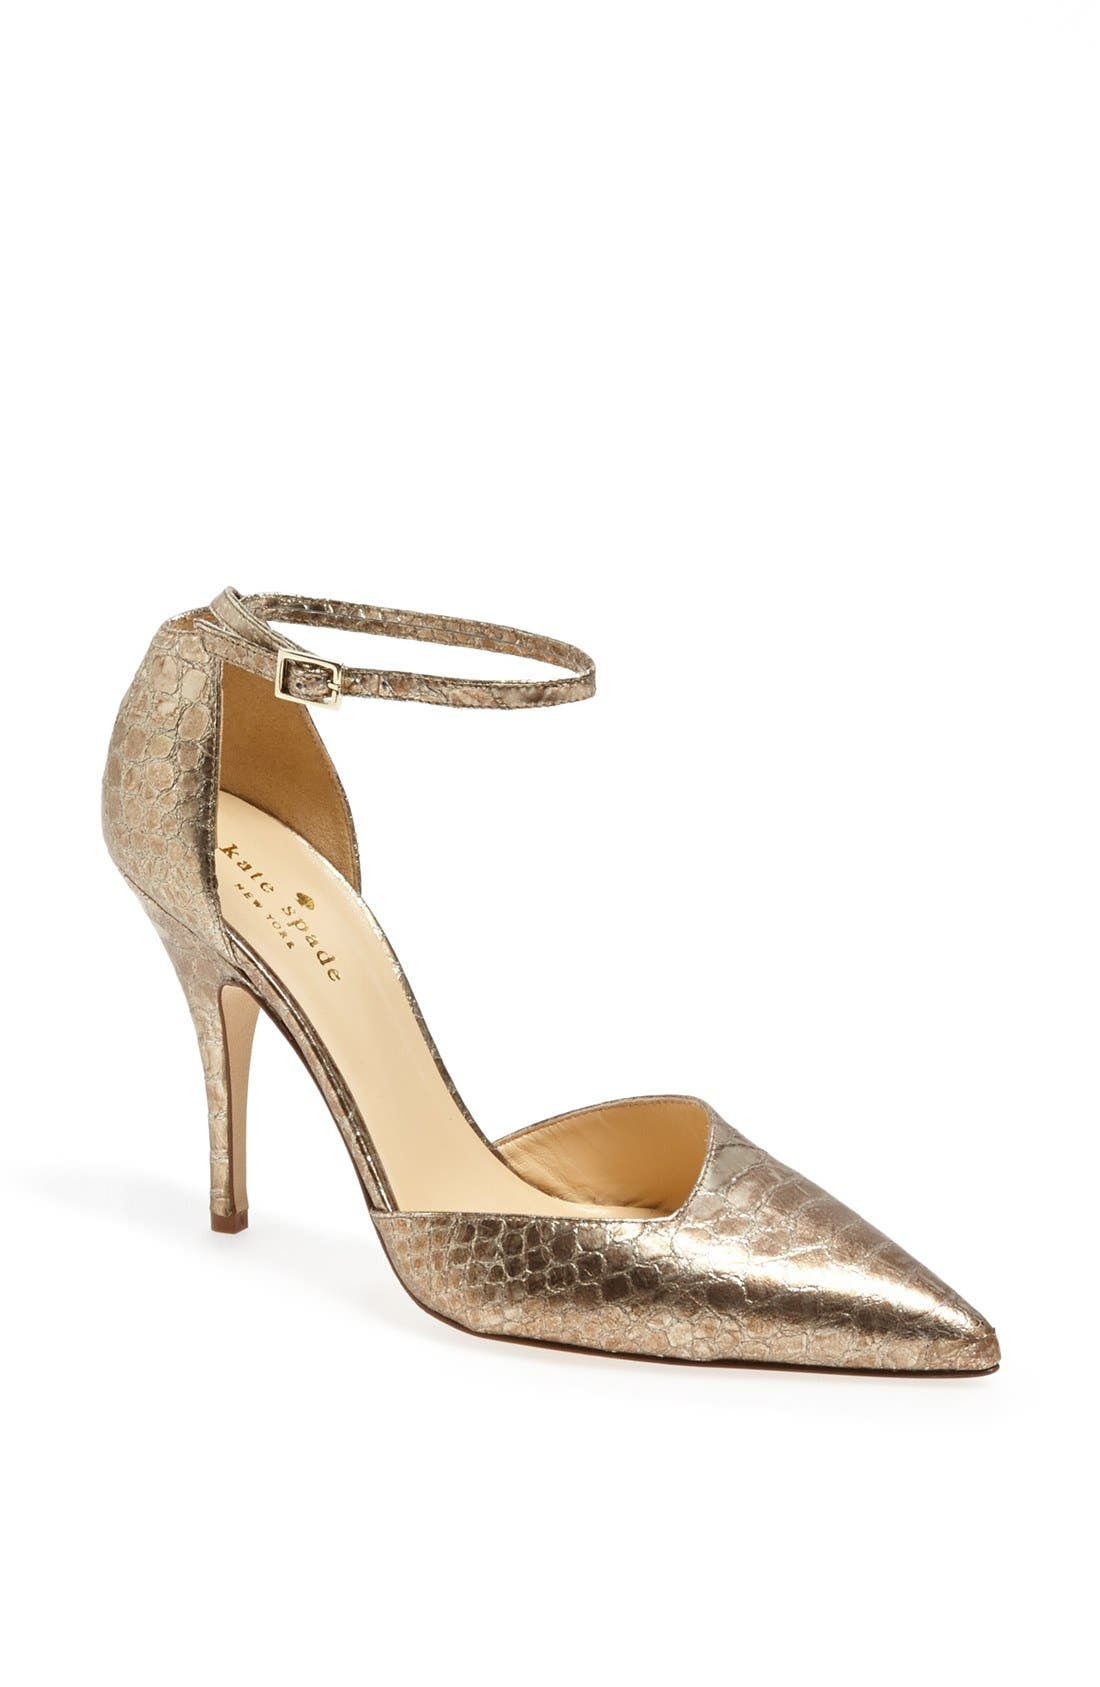 Alternate Image 1 Selected - kate spade new york 'liliana' pump